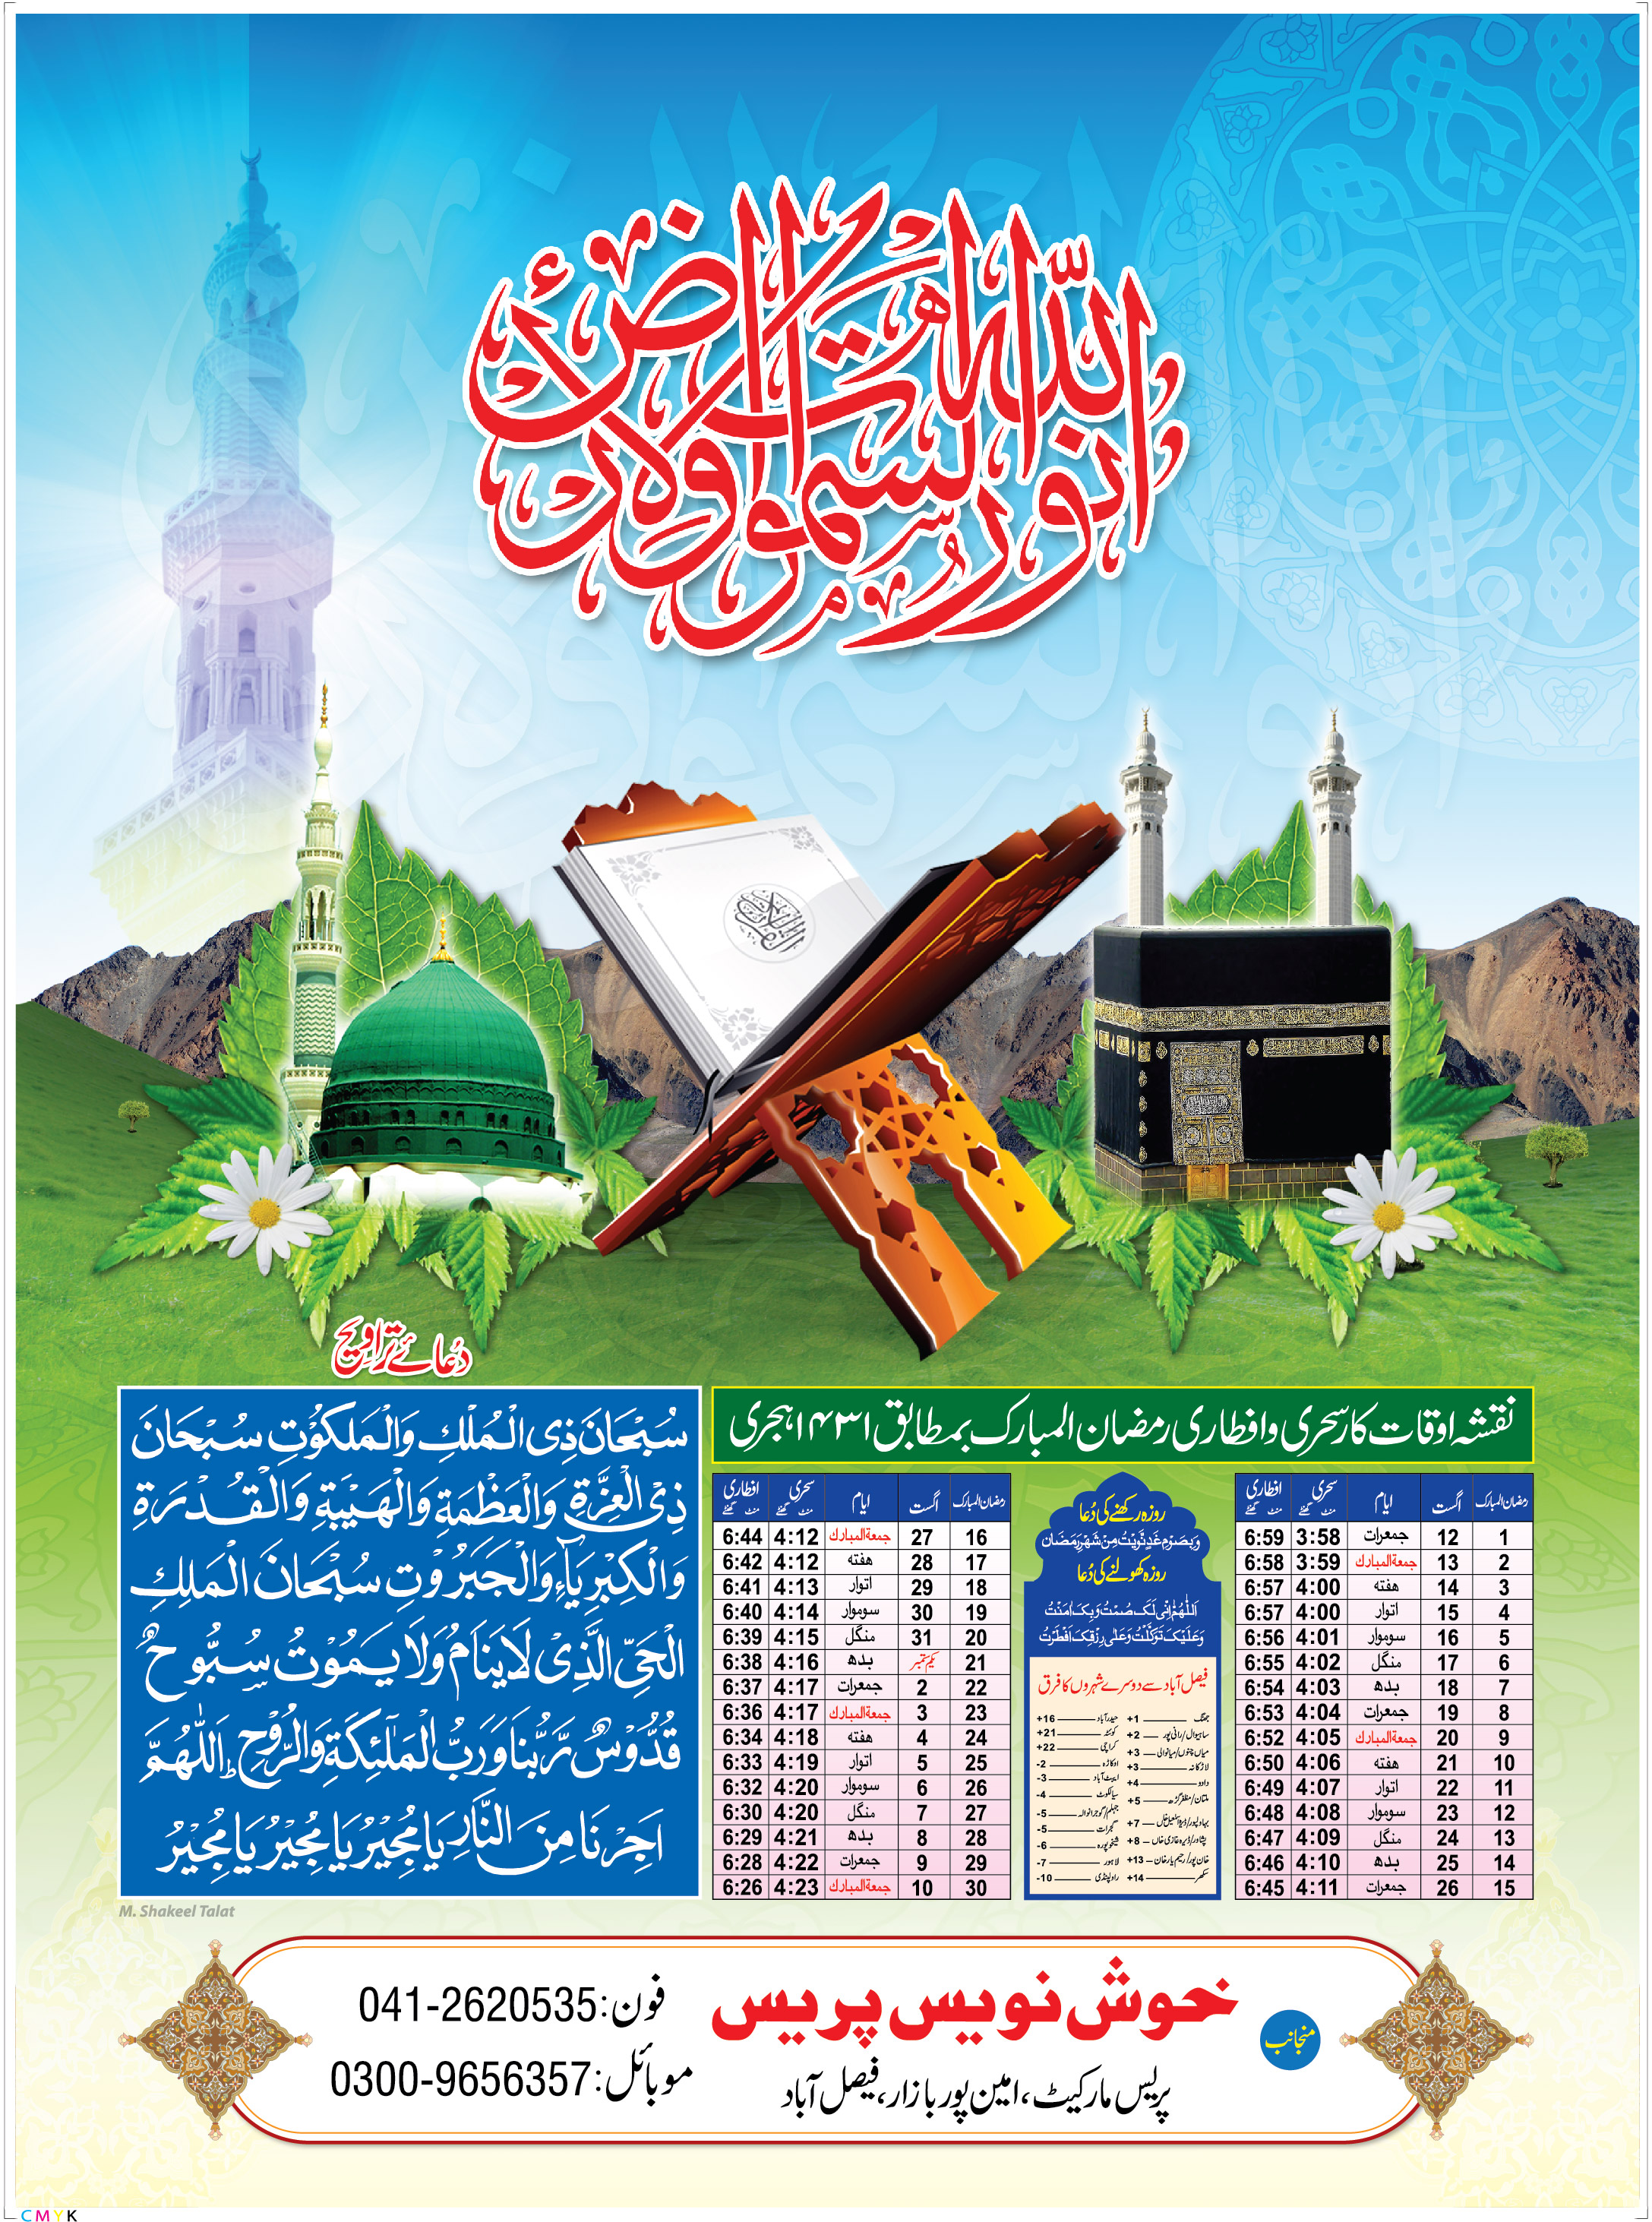 Calendar Design Islamic : Islamic by engr shakeel talat at coroflot